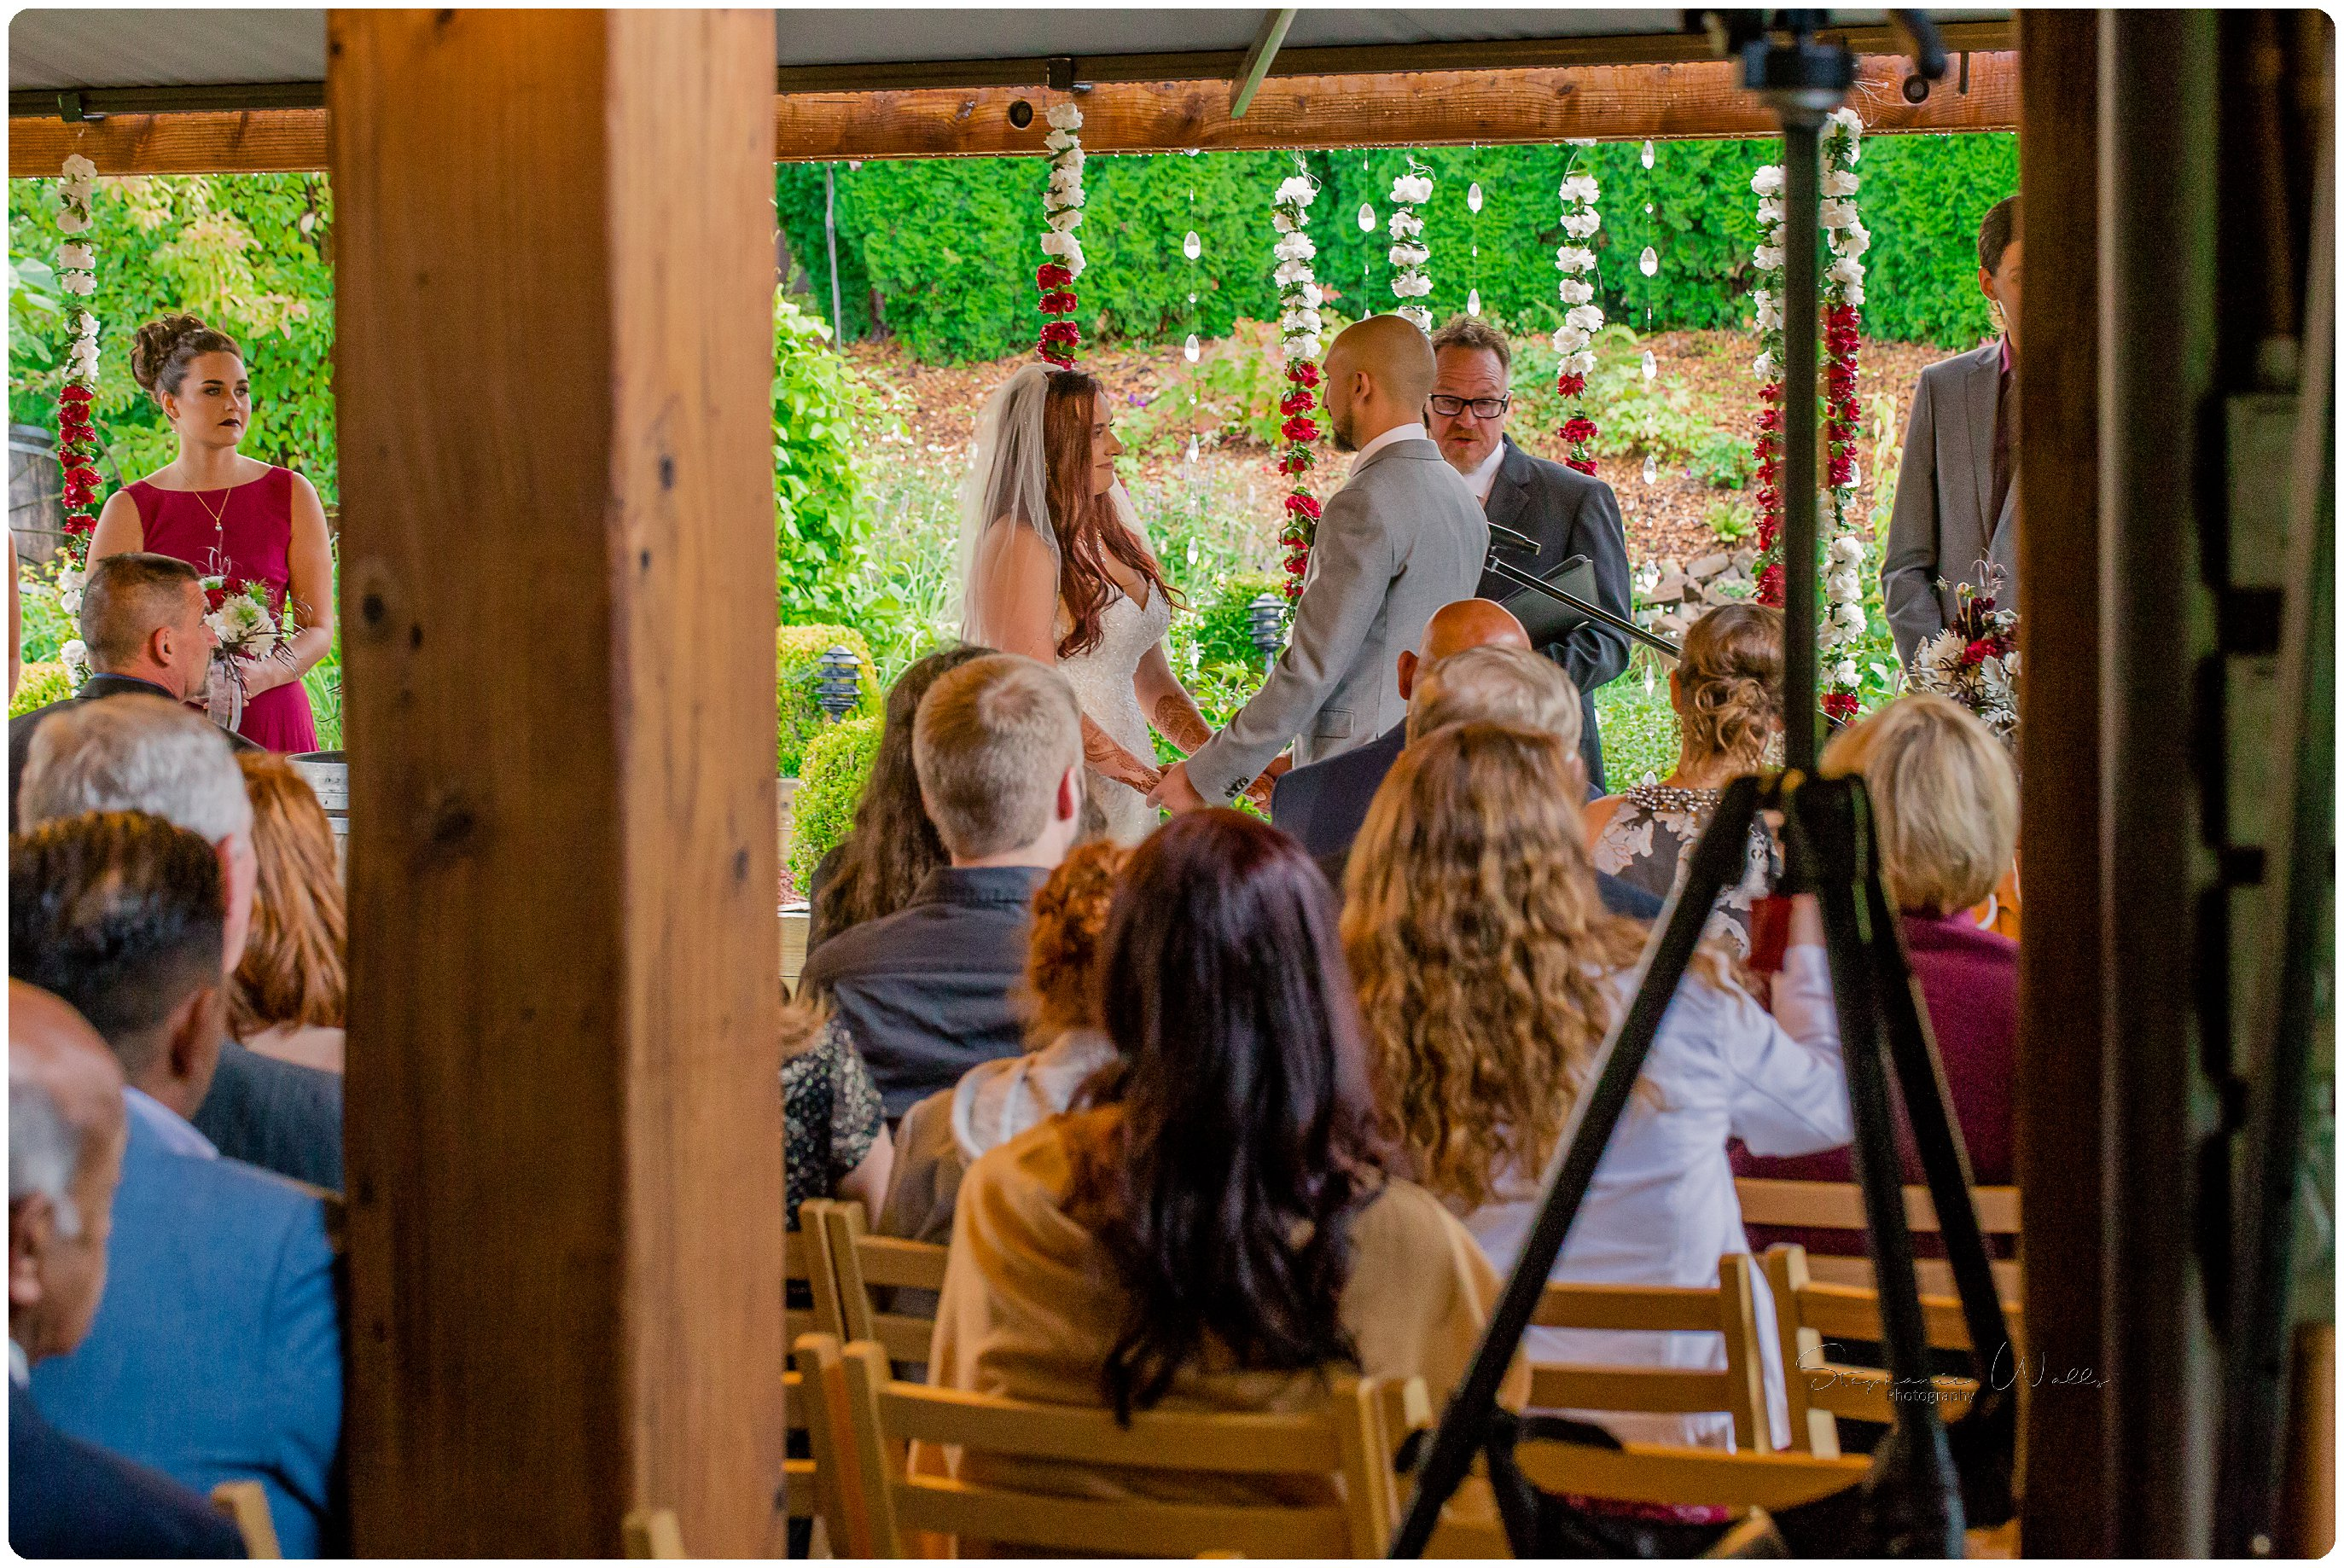 1st Look Ceremony 161 Megan & Mo's Day 2   Willow Lodge Wedding   Woodinville, Wa Wedding Photographer